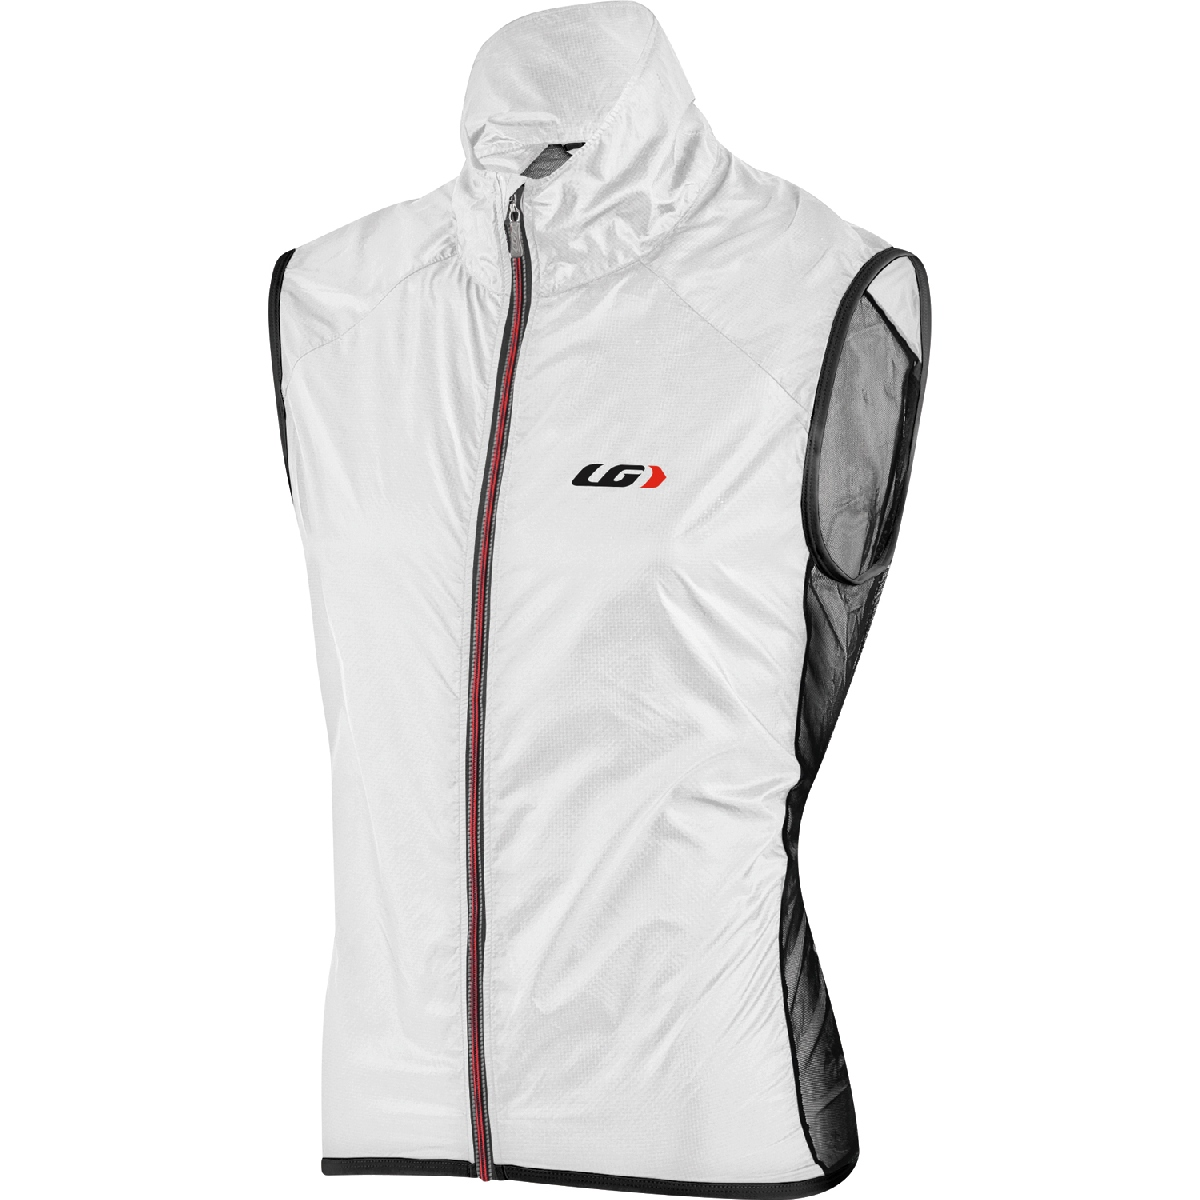 Louis Garneau Speedzone X Lite Cycling Vest Men's Size XXL White Black U.S.A. & Canada